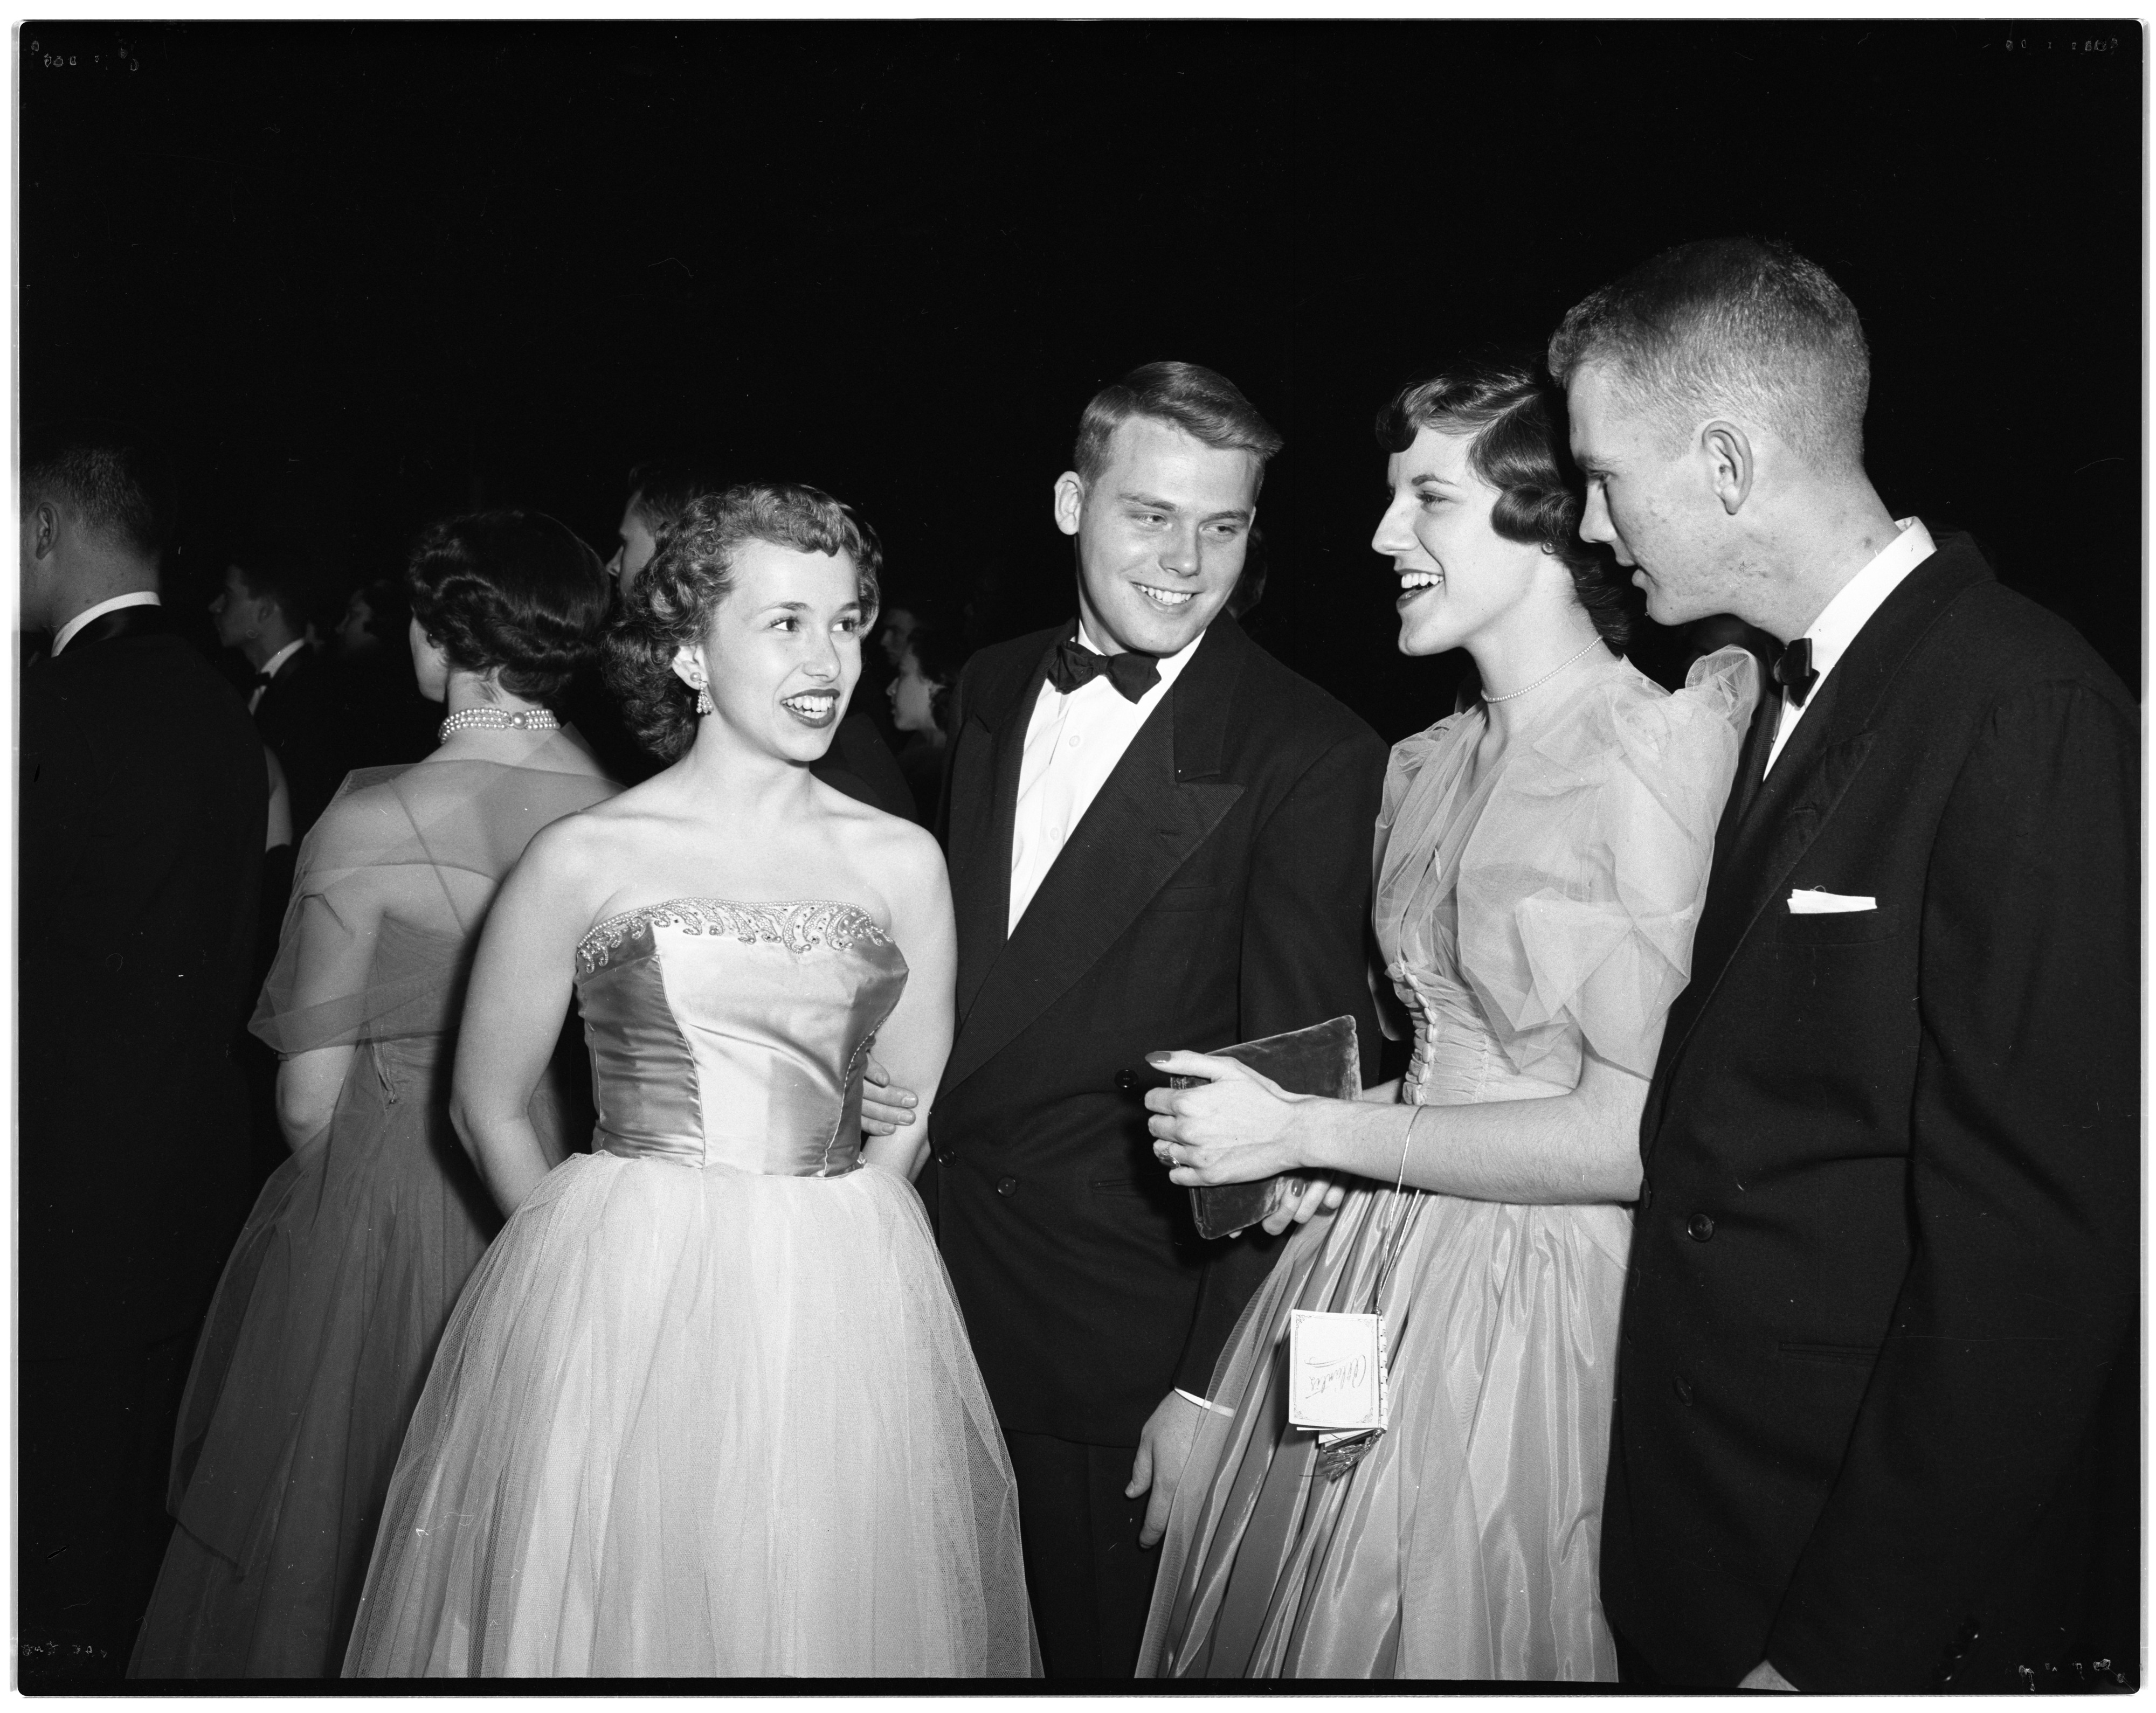 Dorothy Hammett and George Allen (couple at left) chat with Mary Ann Kerlikowske and Gary Michaelson at the J-Hop, February 5, 1954 image